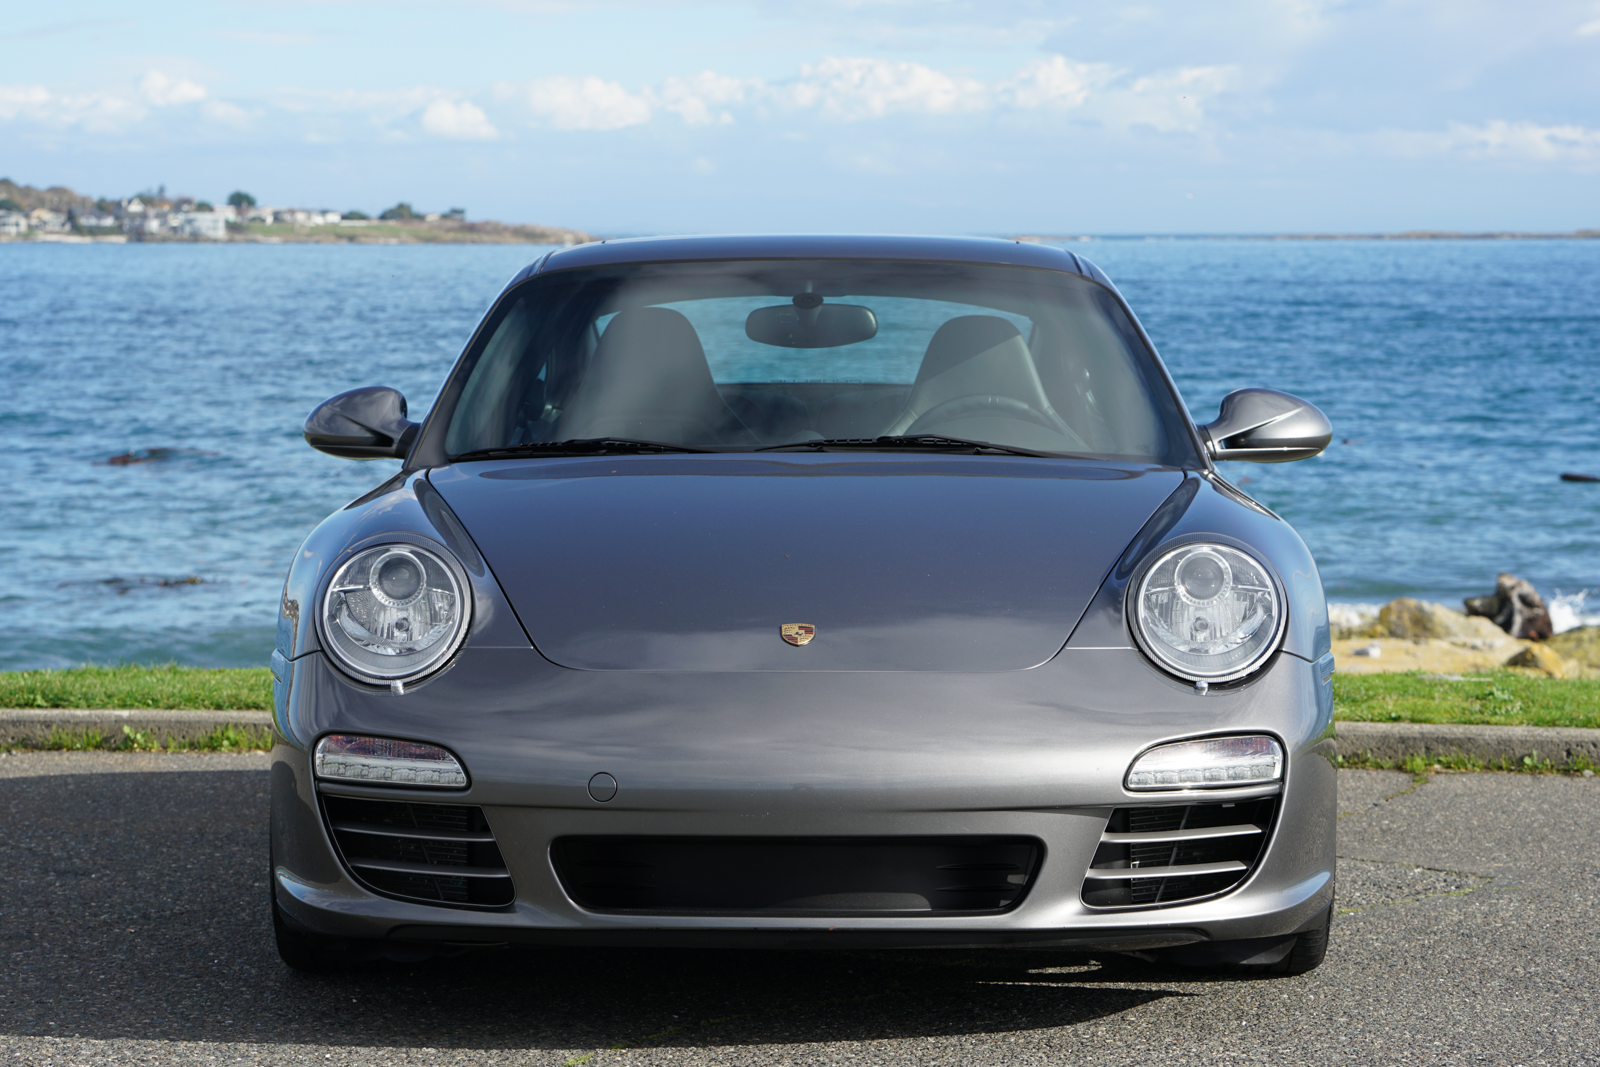 porsche 911 997 carrera 4s launch edition for sale. Black Bedroom Furniture Sets. Home Design Ideas